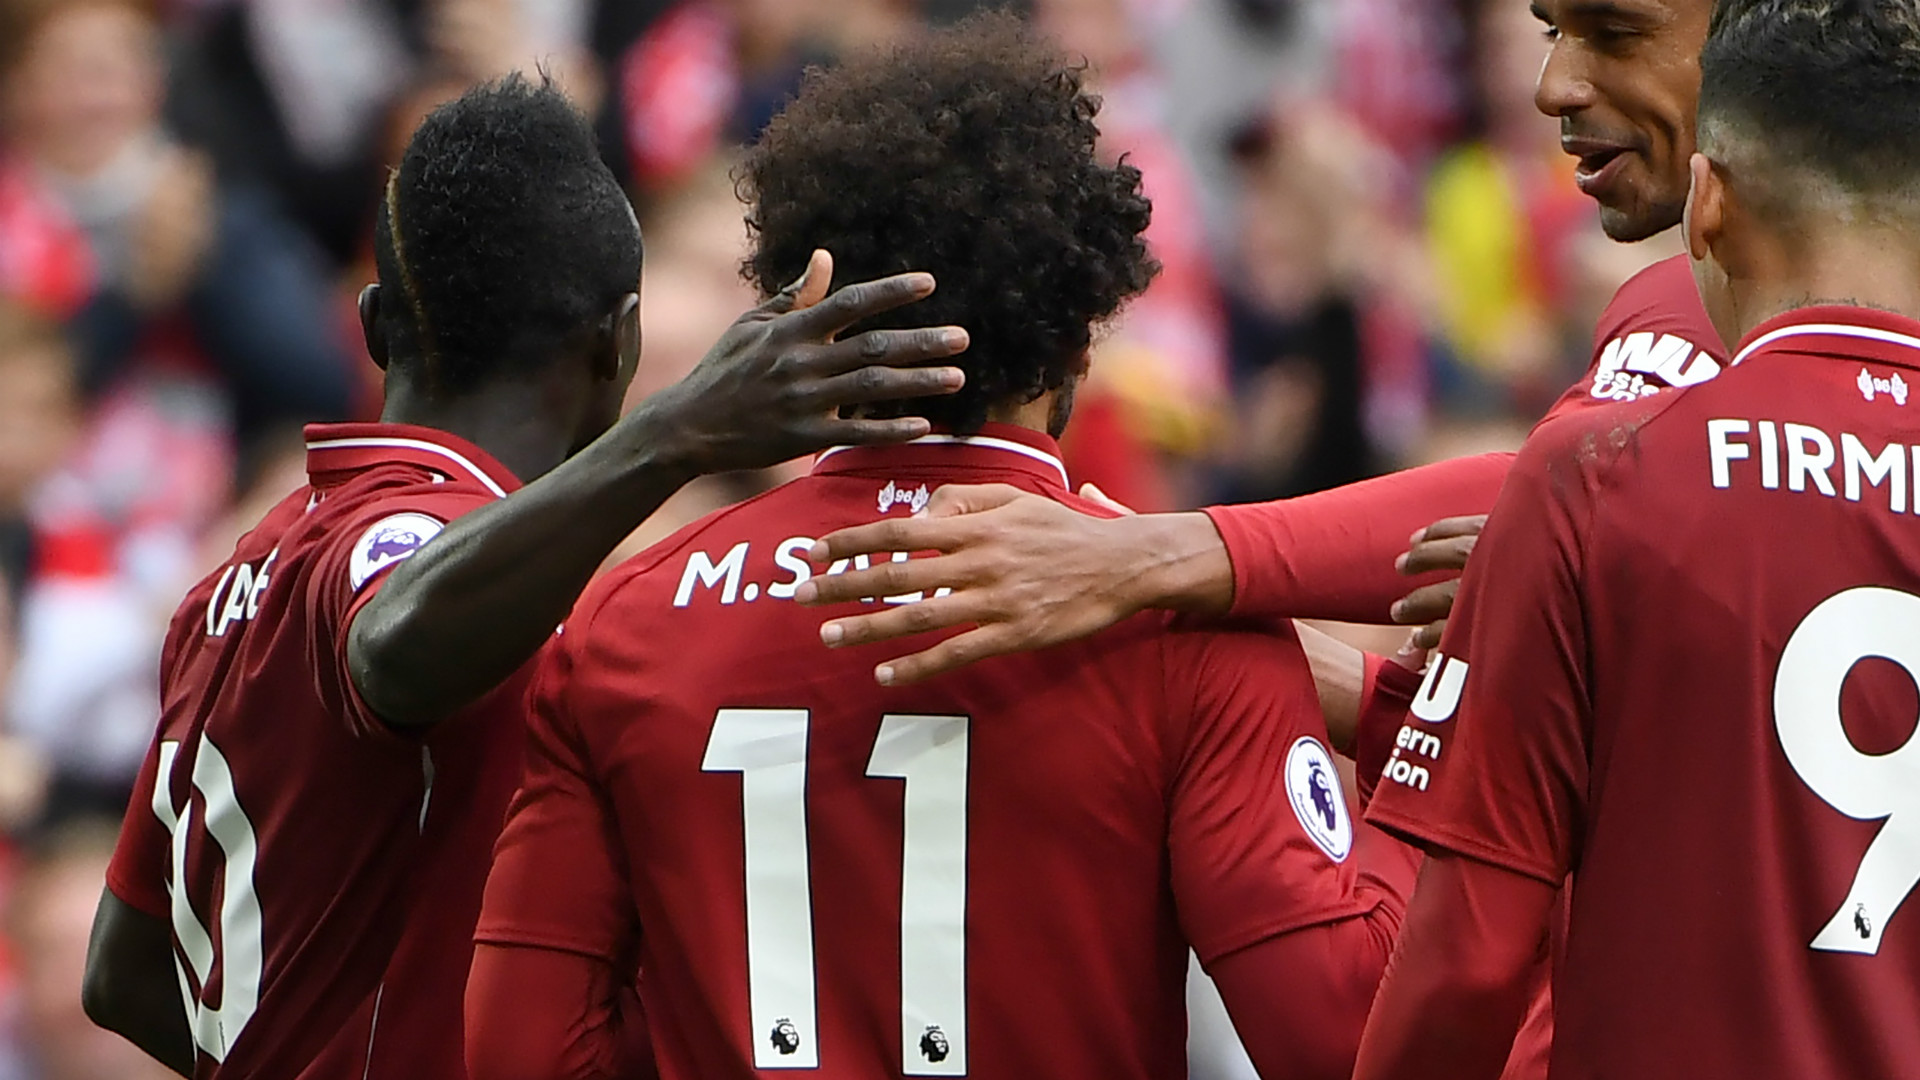 BetKing Preview: Liverpool v Manchester City: An explosive encounter on Merseyside awaits